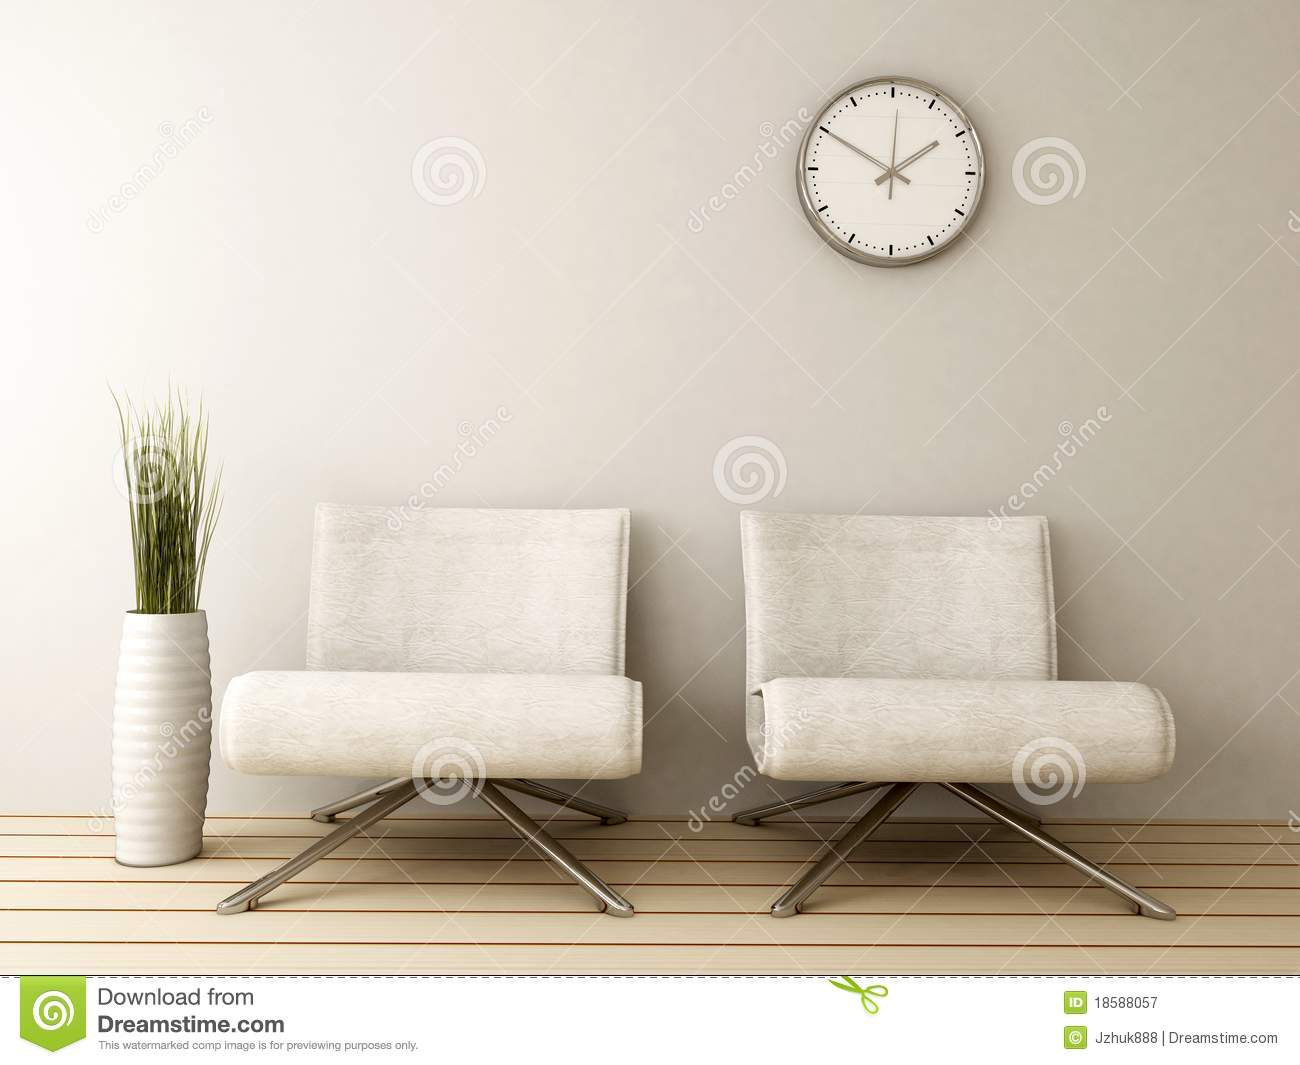 Waiting Room With Two Chairs Royalty Free Stock